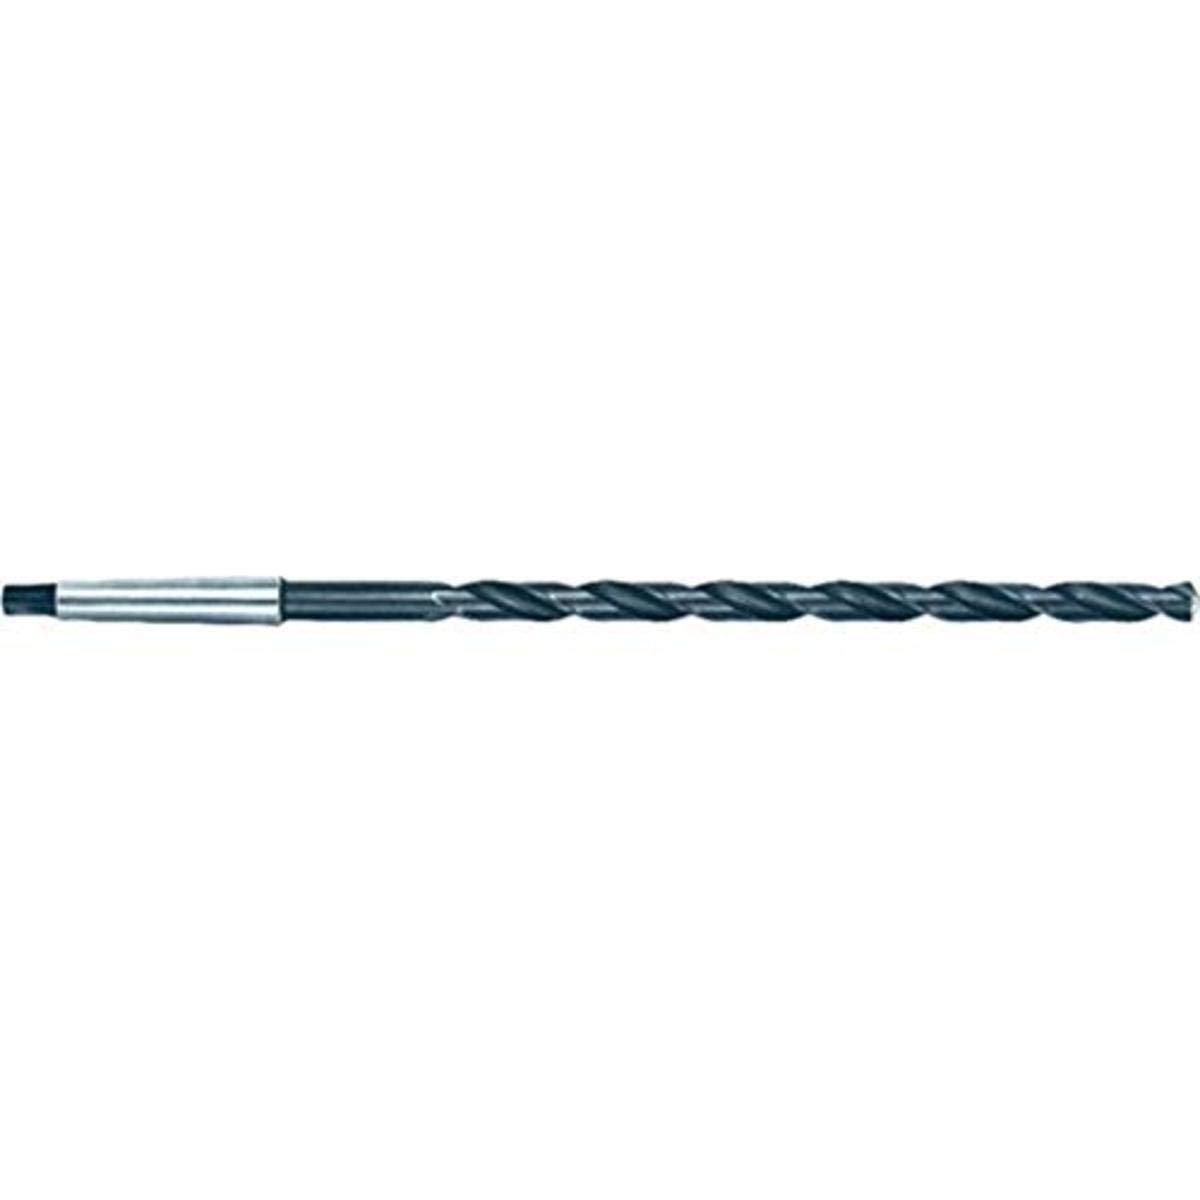 Seco 44651 Extra Length Drill Bits mm 9.53 Siz Spring new work SD216A Sale special price Bit